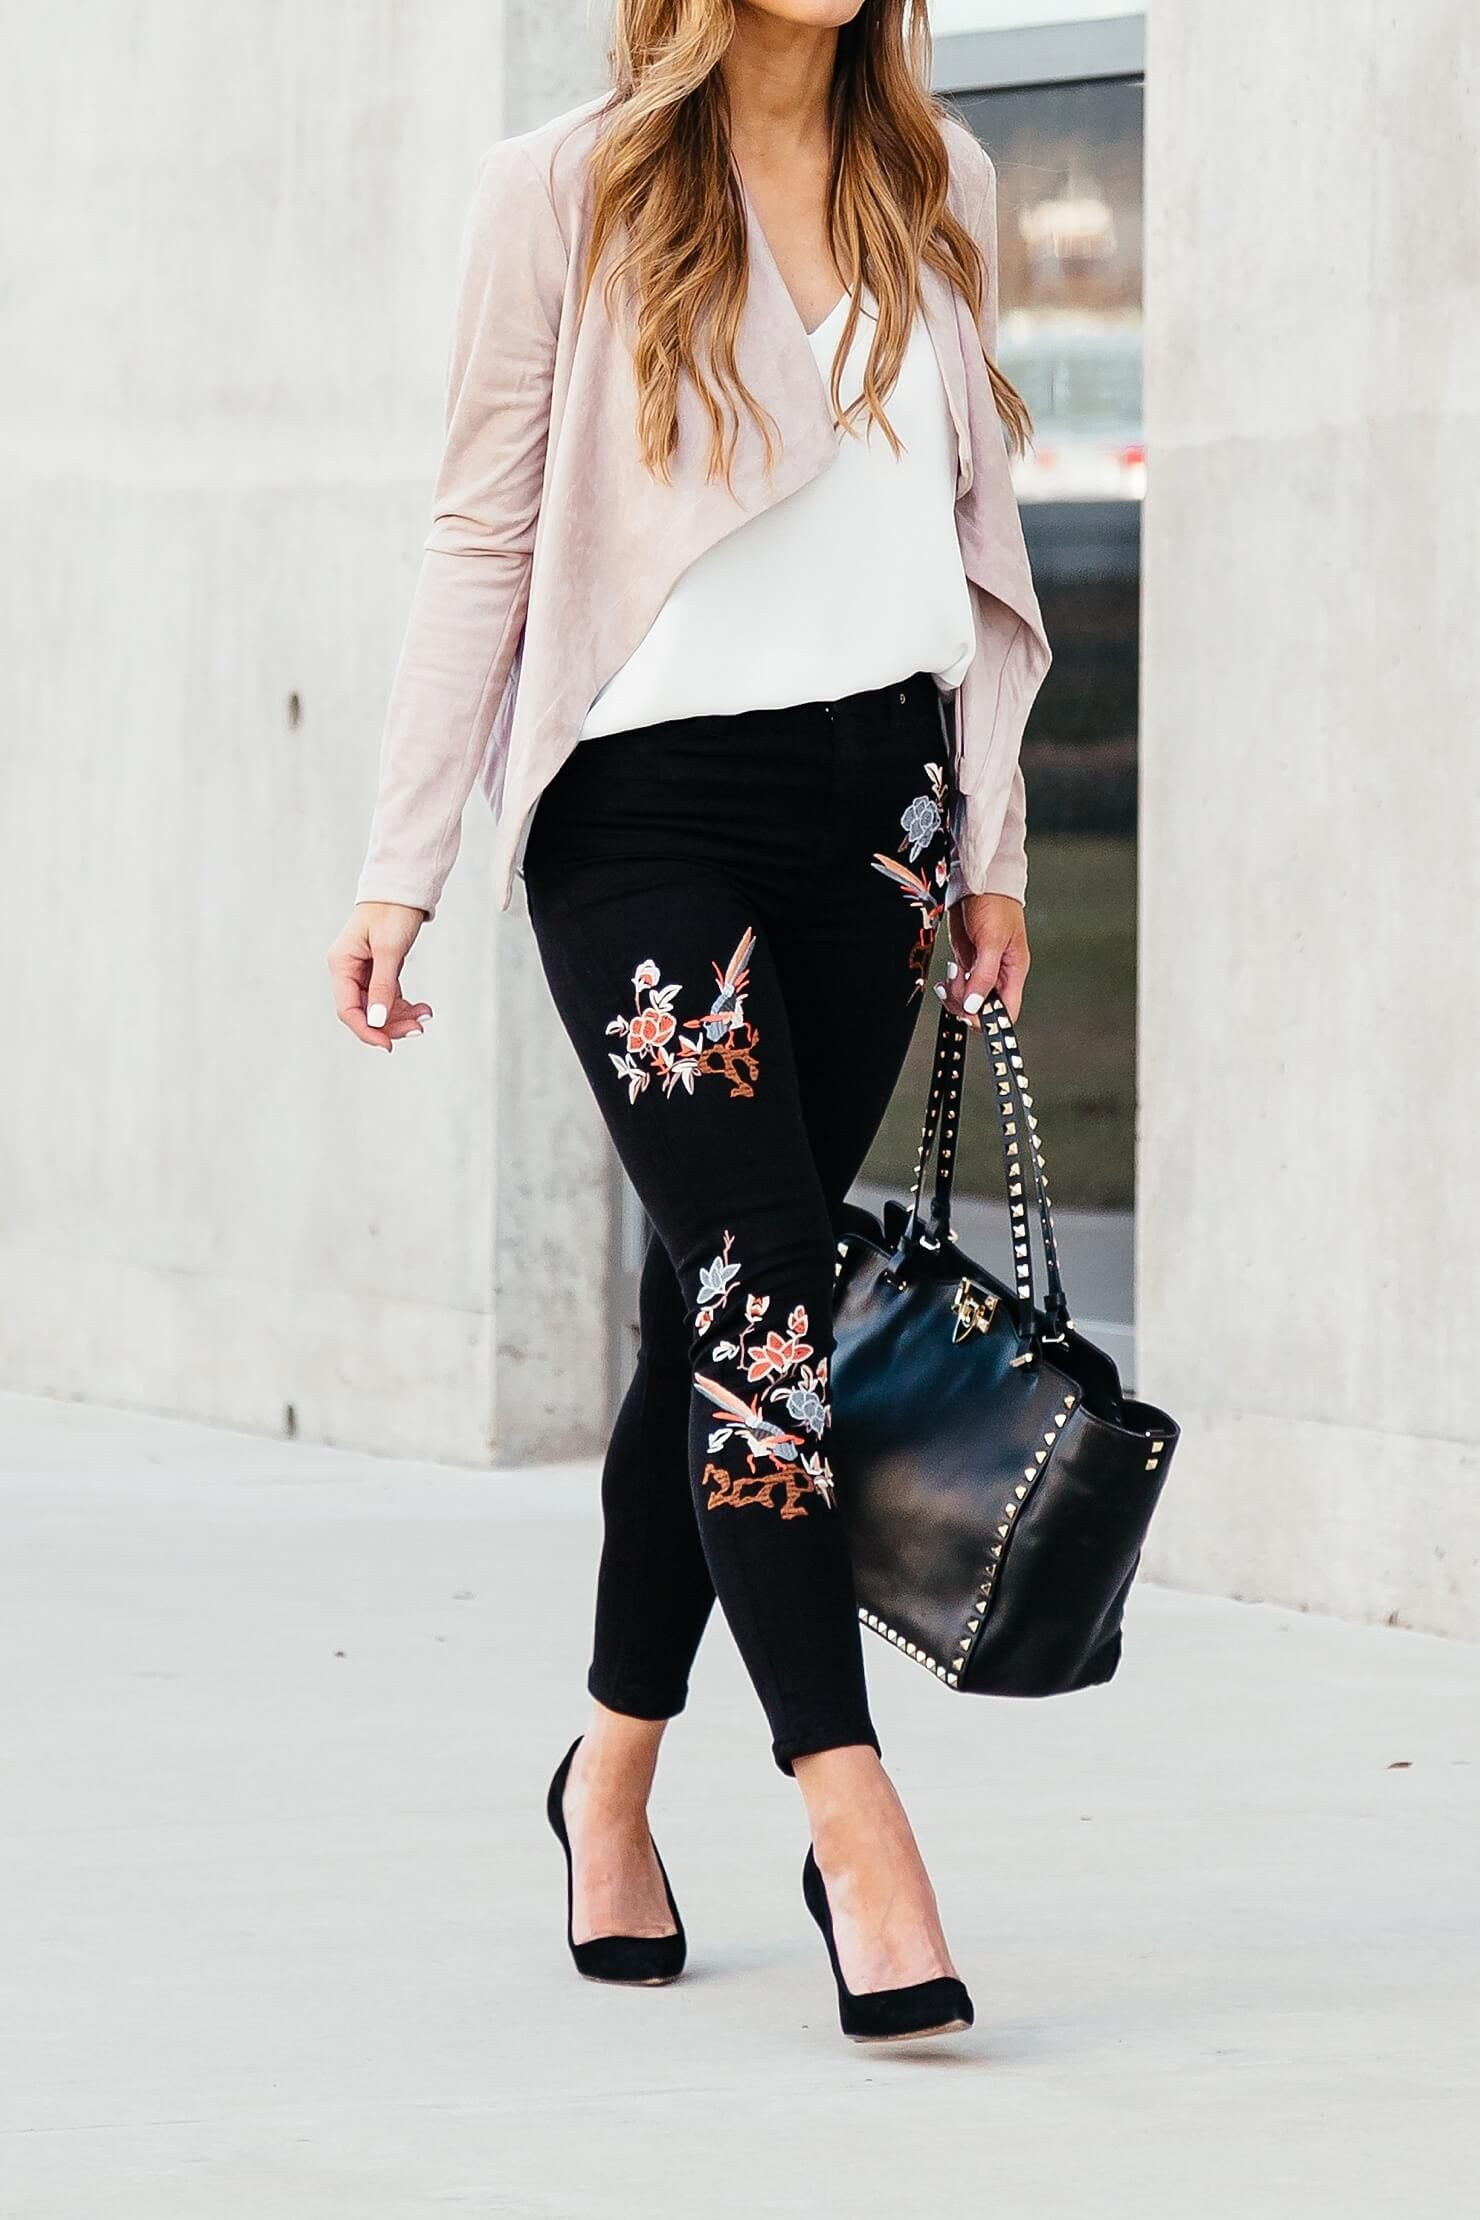 embroidered jeans outfit    floral pant outfit    pink jacket outfit ideas dbbd0d951af3